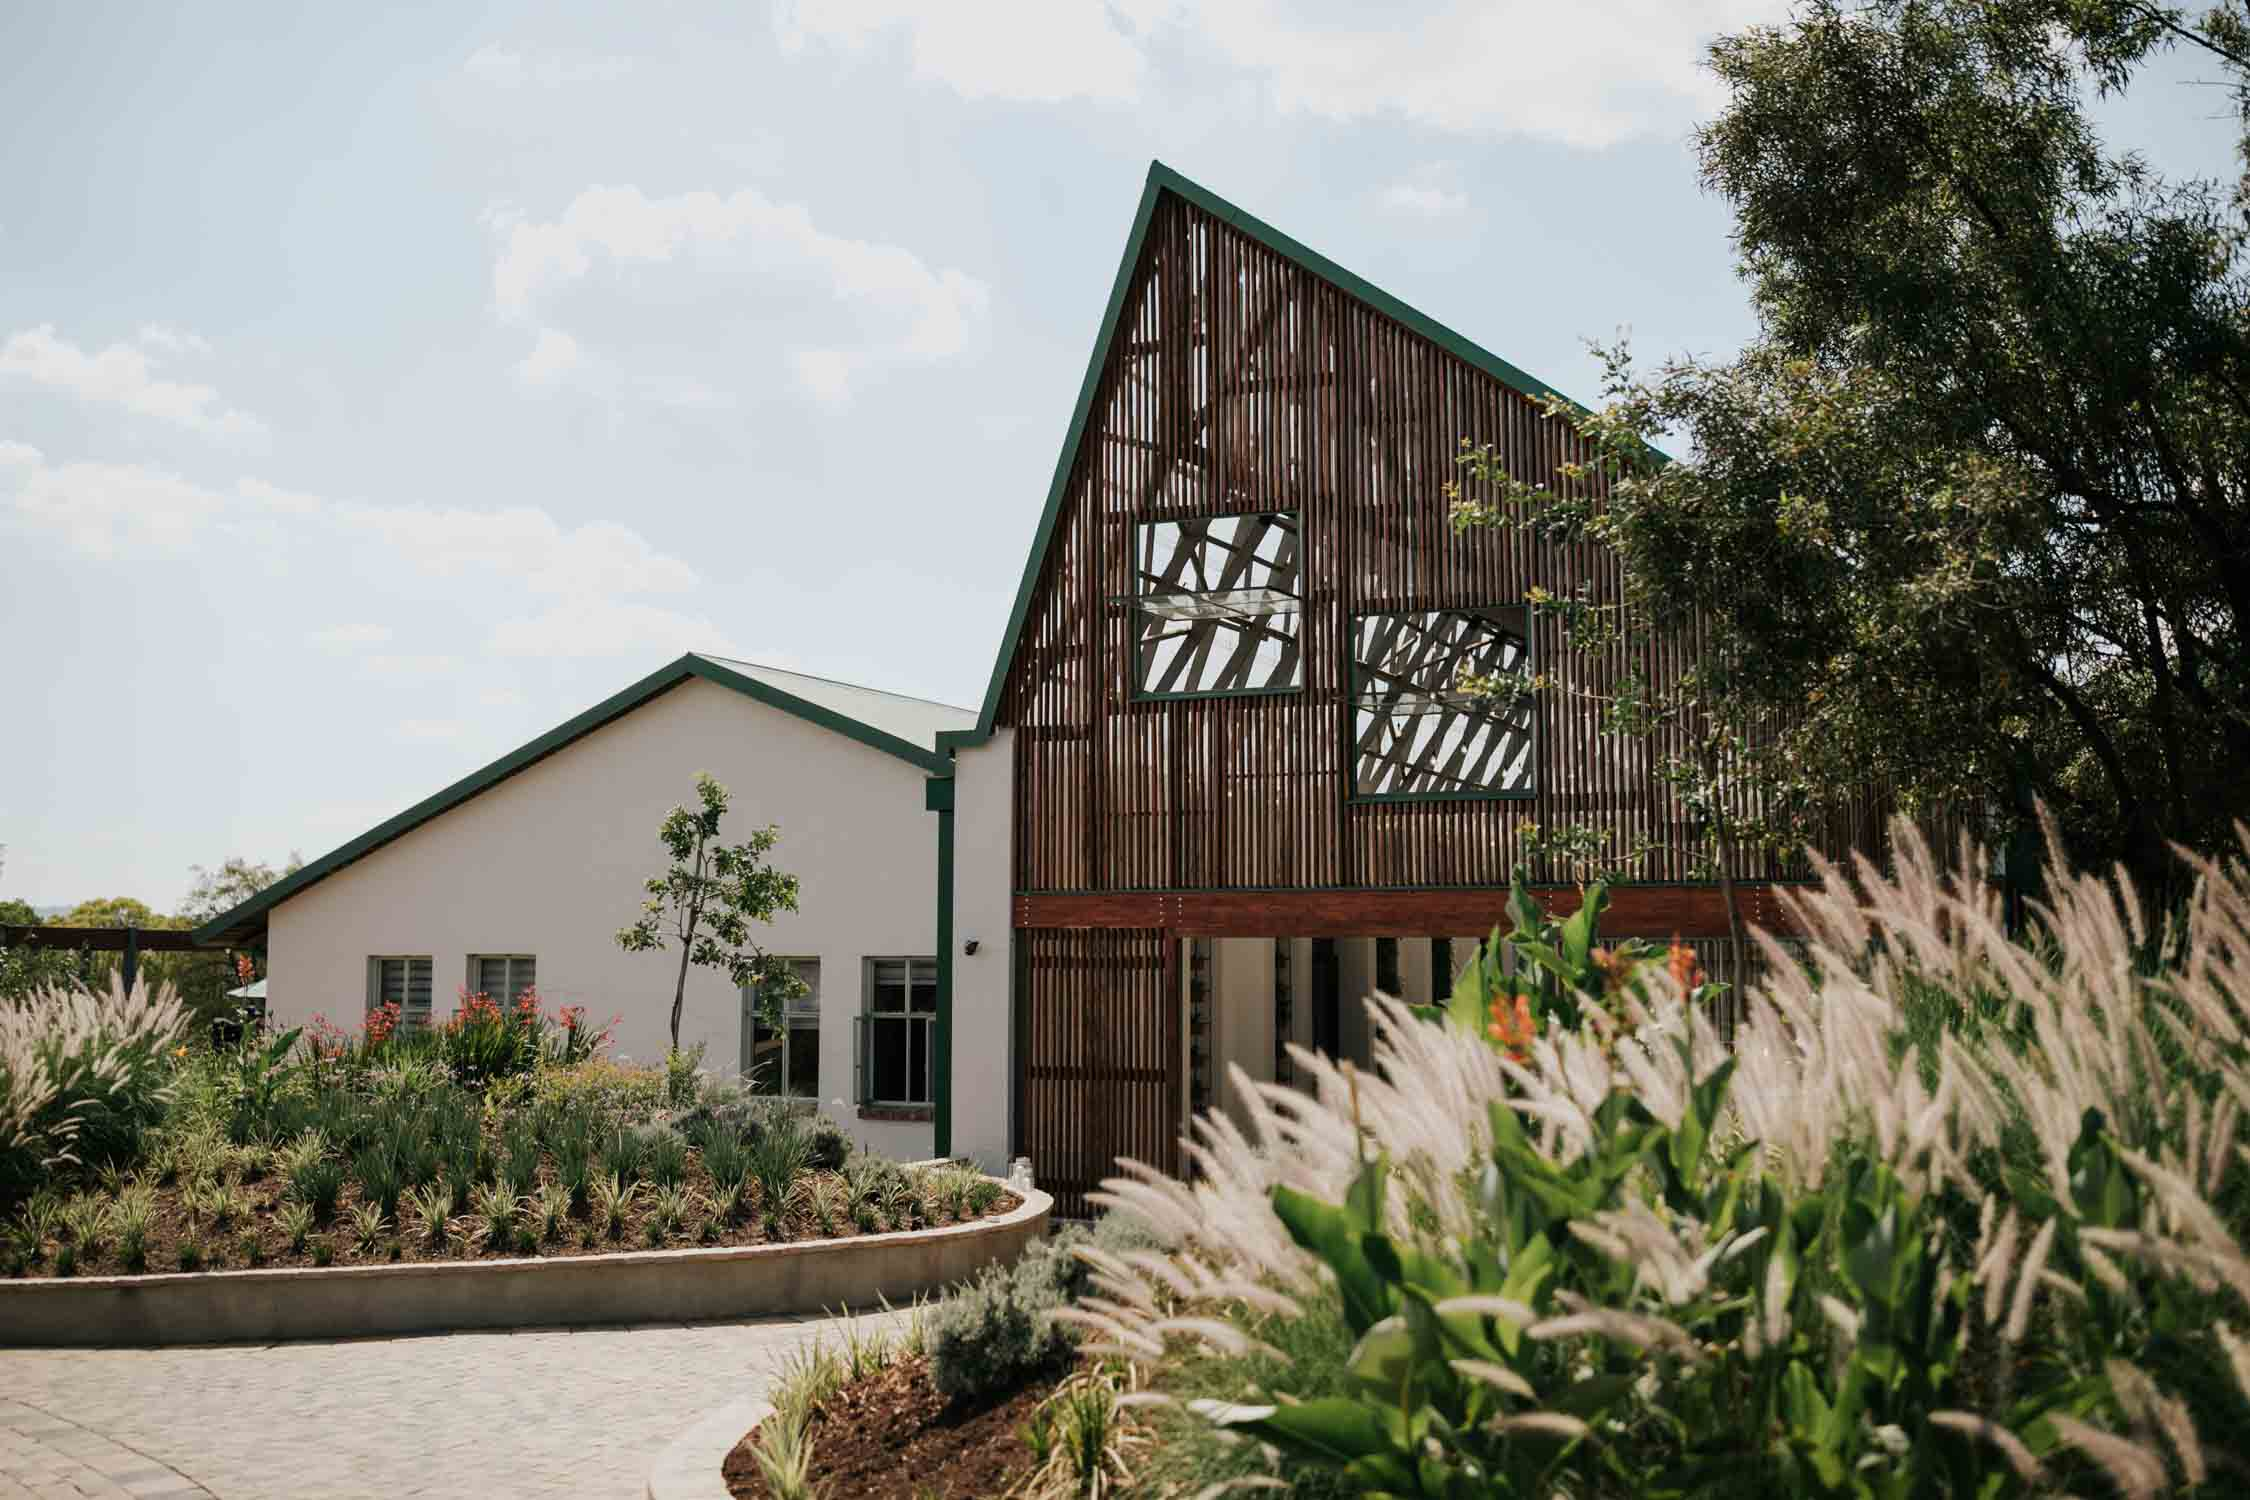 The Greenhouse Cafe is a modern wedding venue set on Rosemary Farm in Pretoria